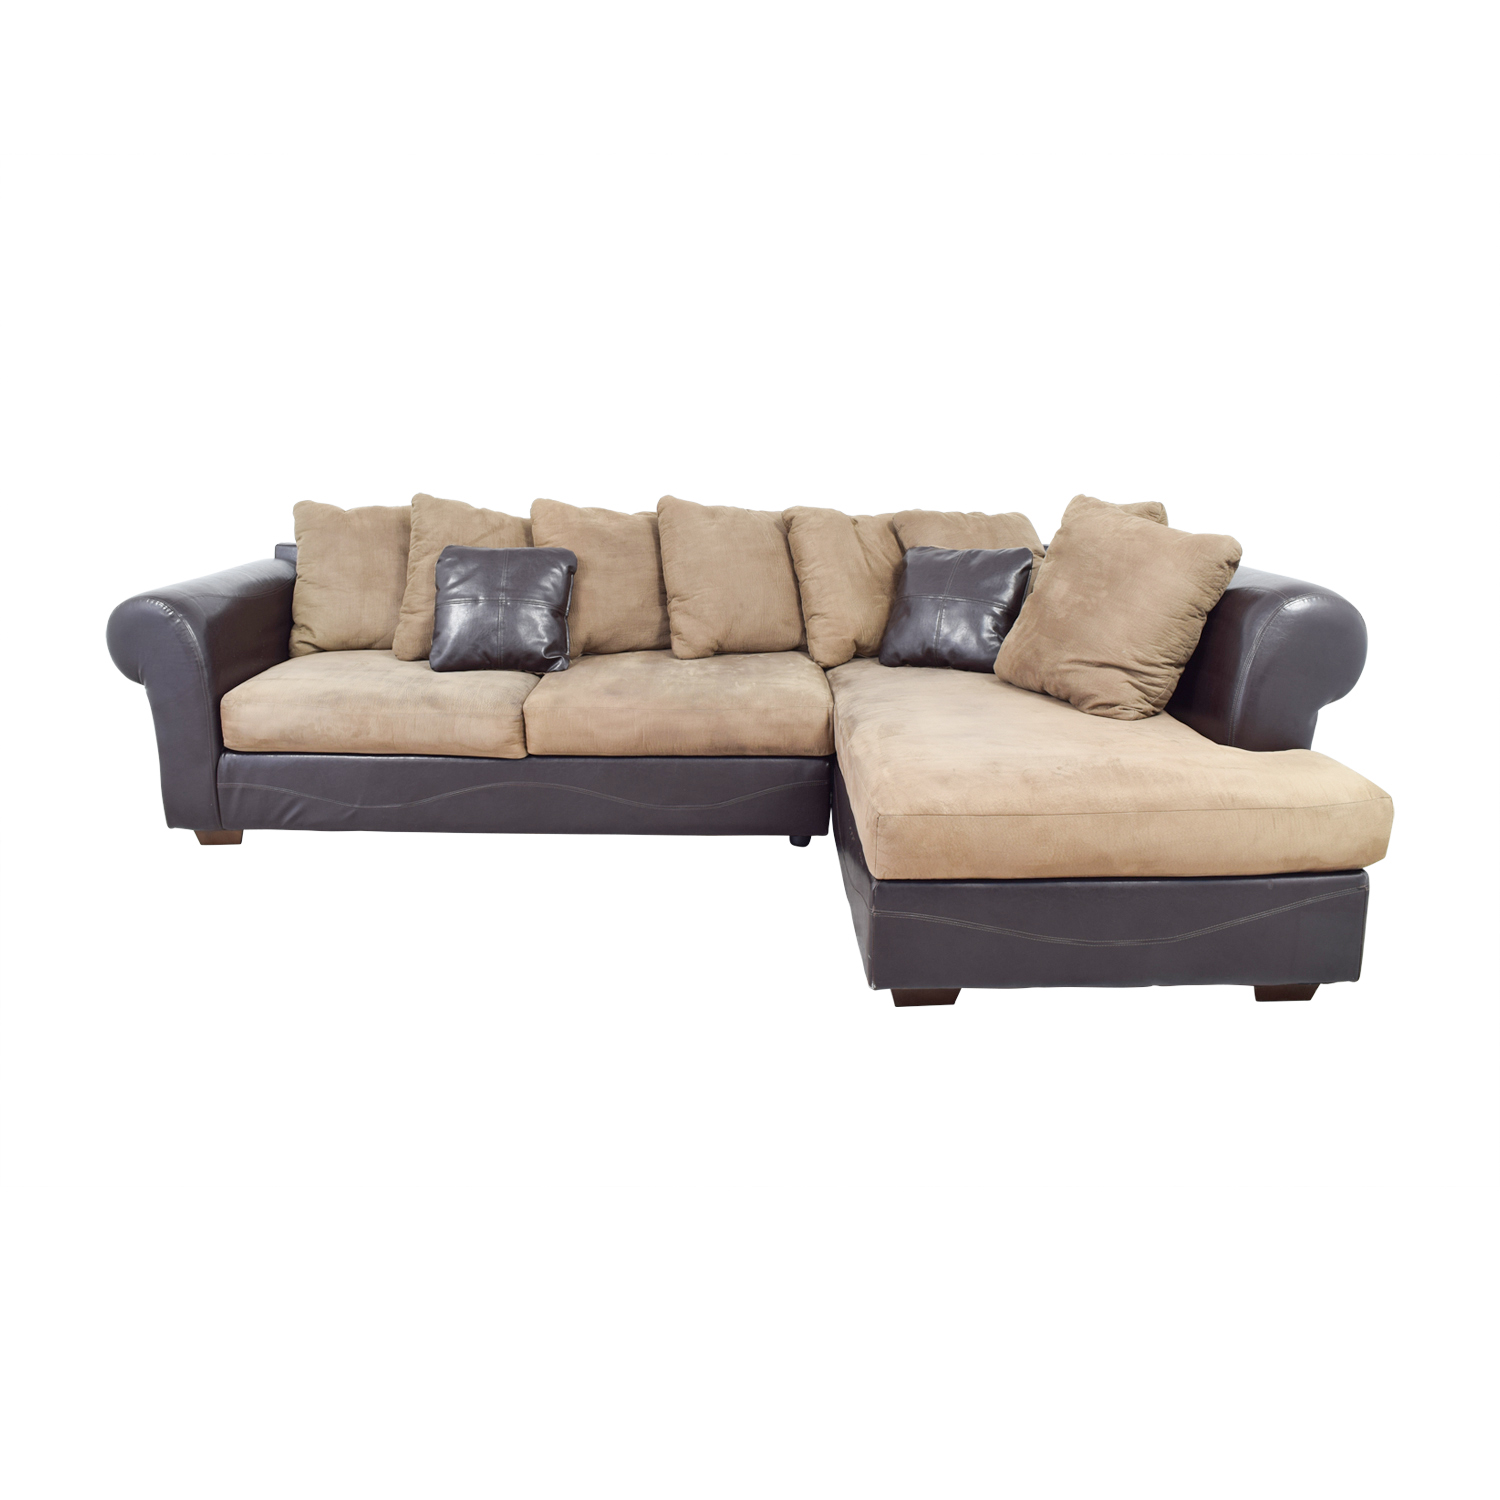 68% OFF - Ashley Furniture Ashley Furniture Brown Leather and Tan  Microfiber Chaise Sectional / Sofas